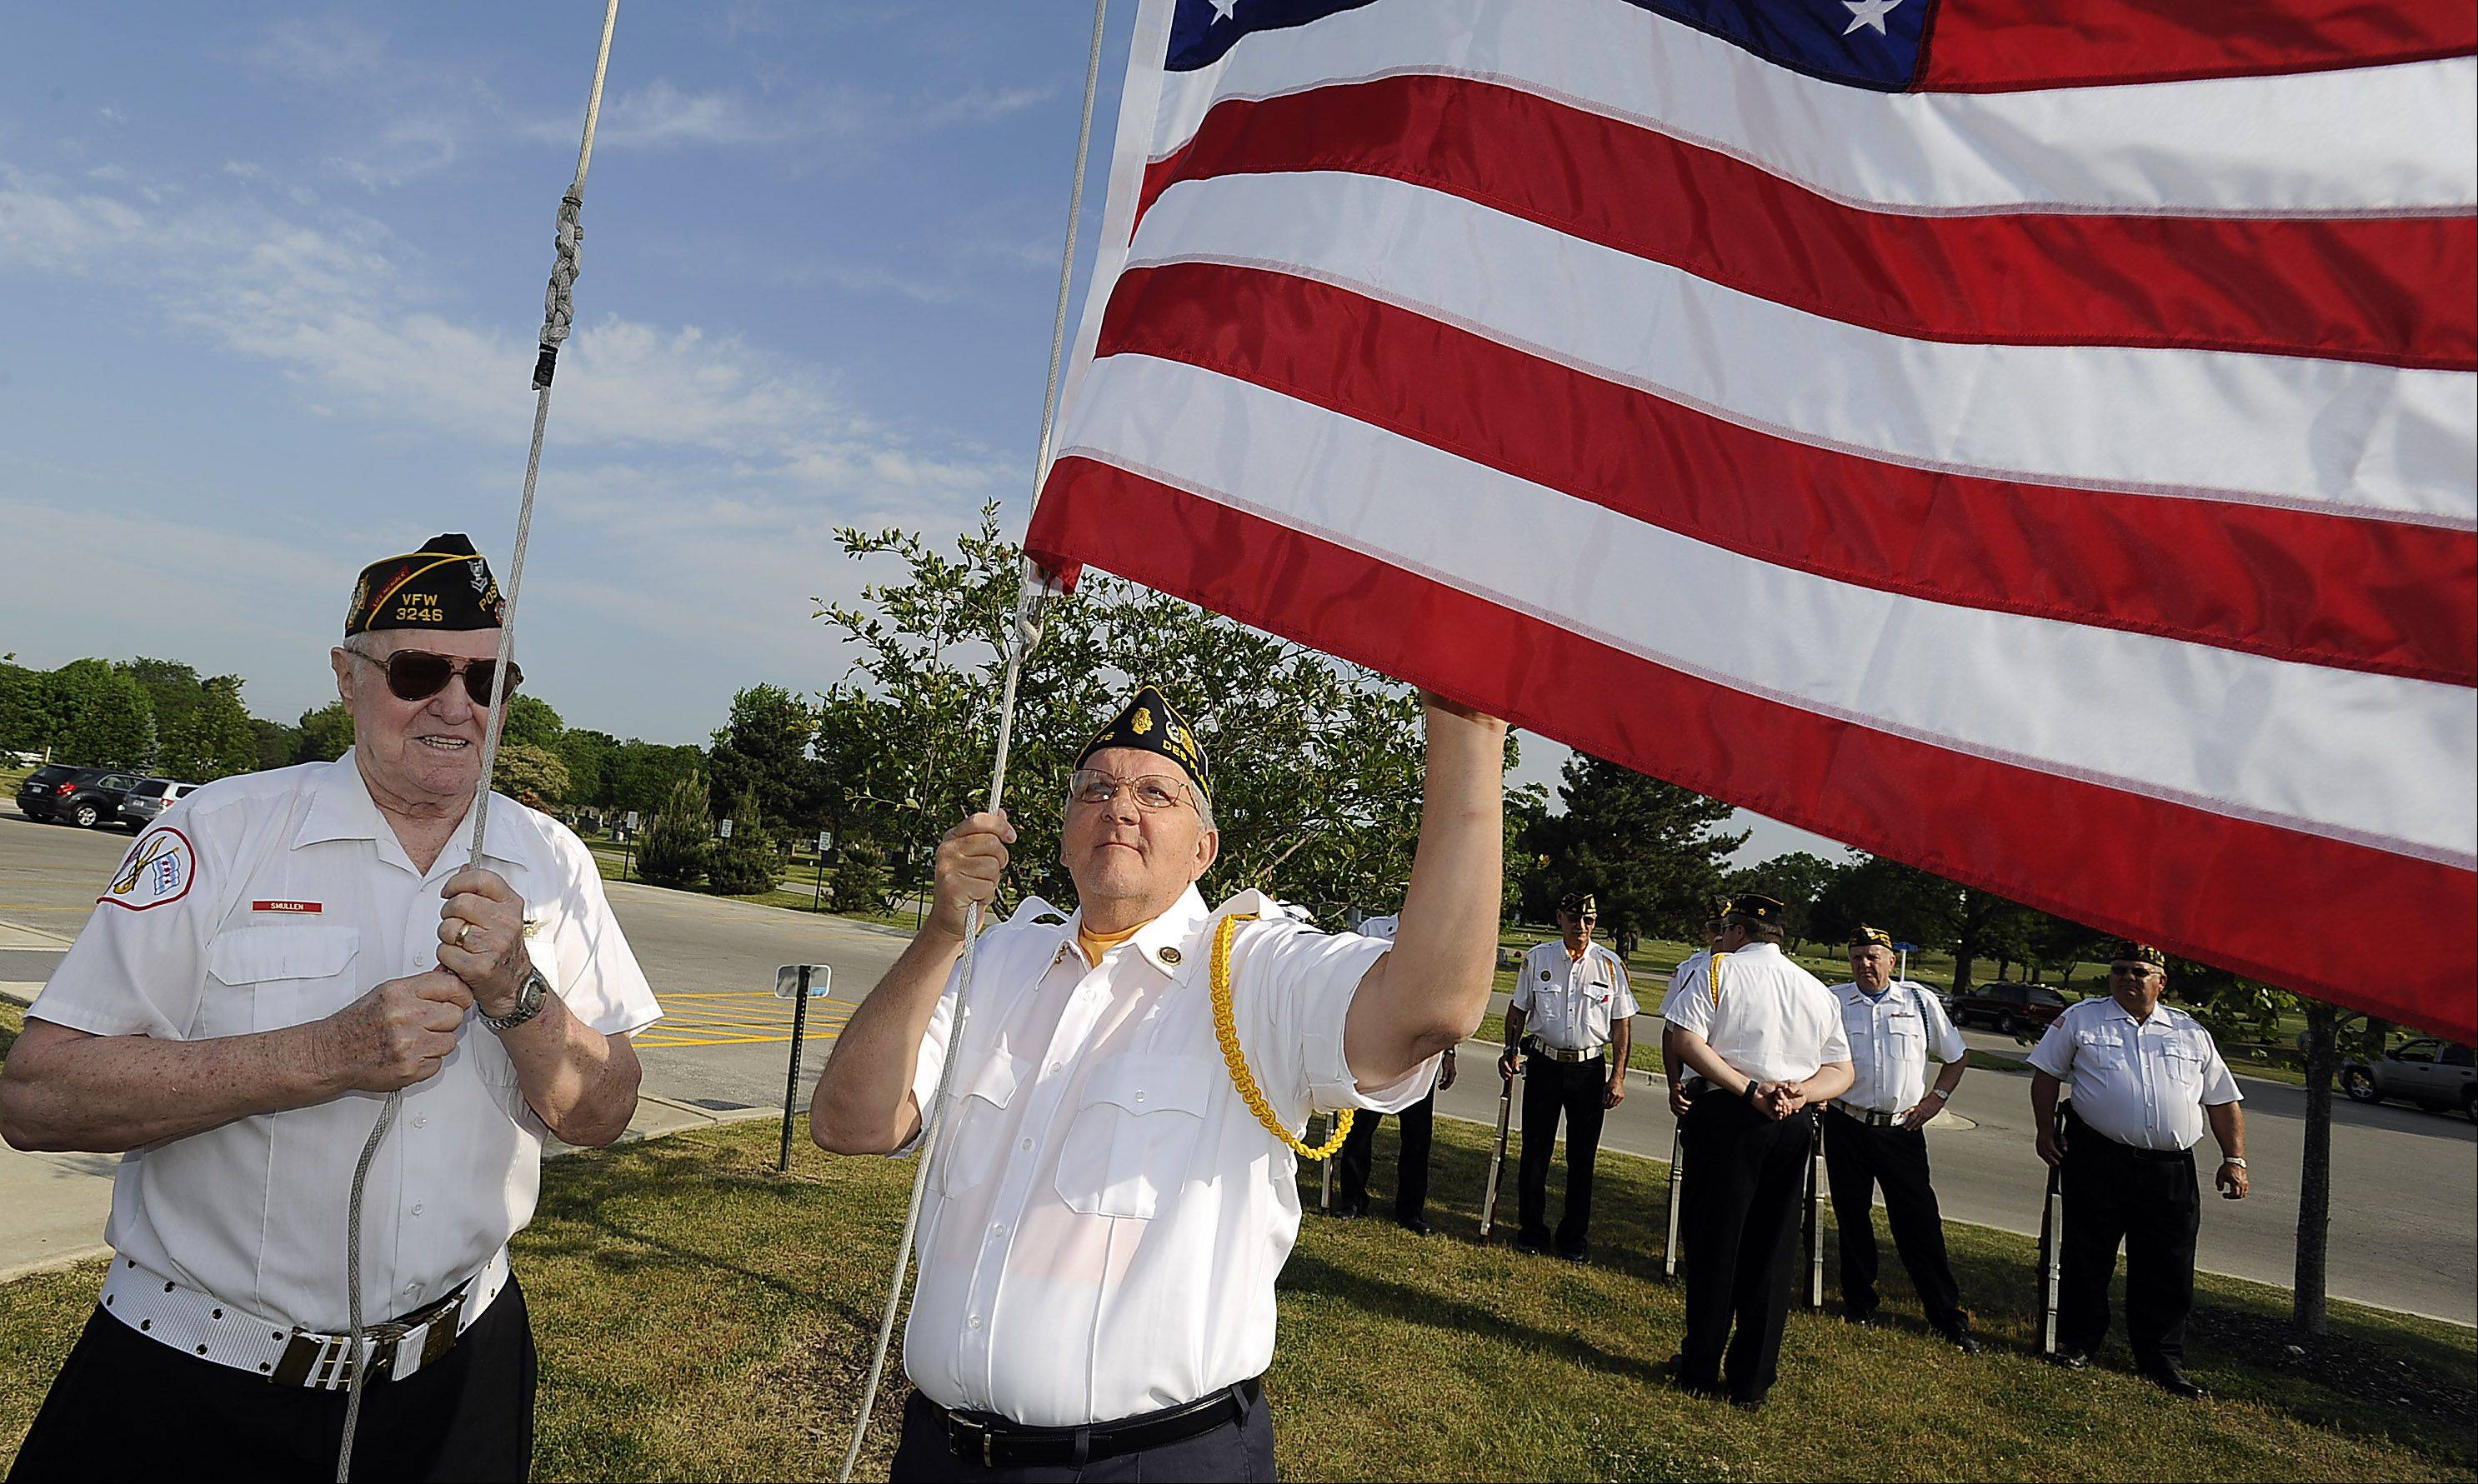 VFW 2992 Officer John Smullen, a veteran of World War II and Korea, along with Officer Ron Simon of American Legion Post 36 raise the flag during the Memorial Day ceremony at All Saints Cemetery in Des Plaines on Monday.